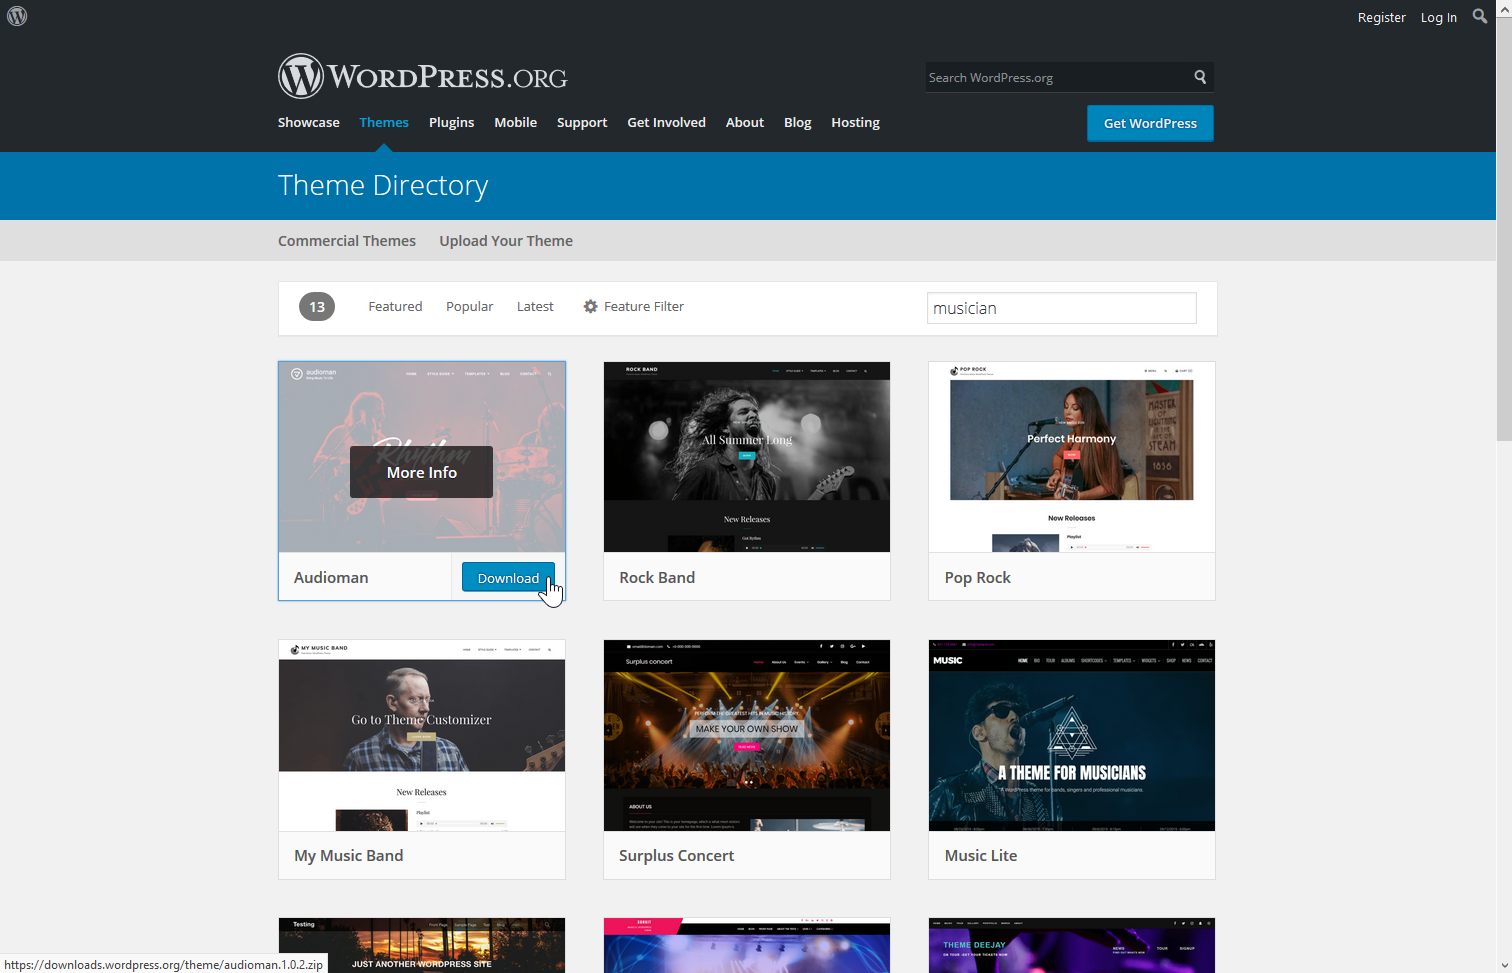 Download a theme from wordpress.org